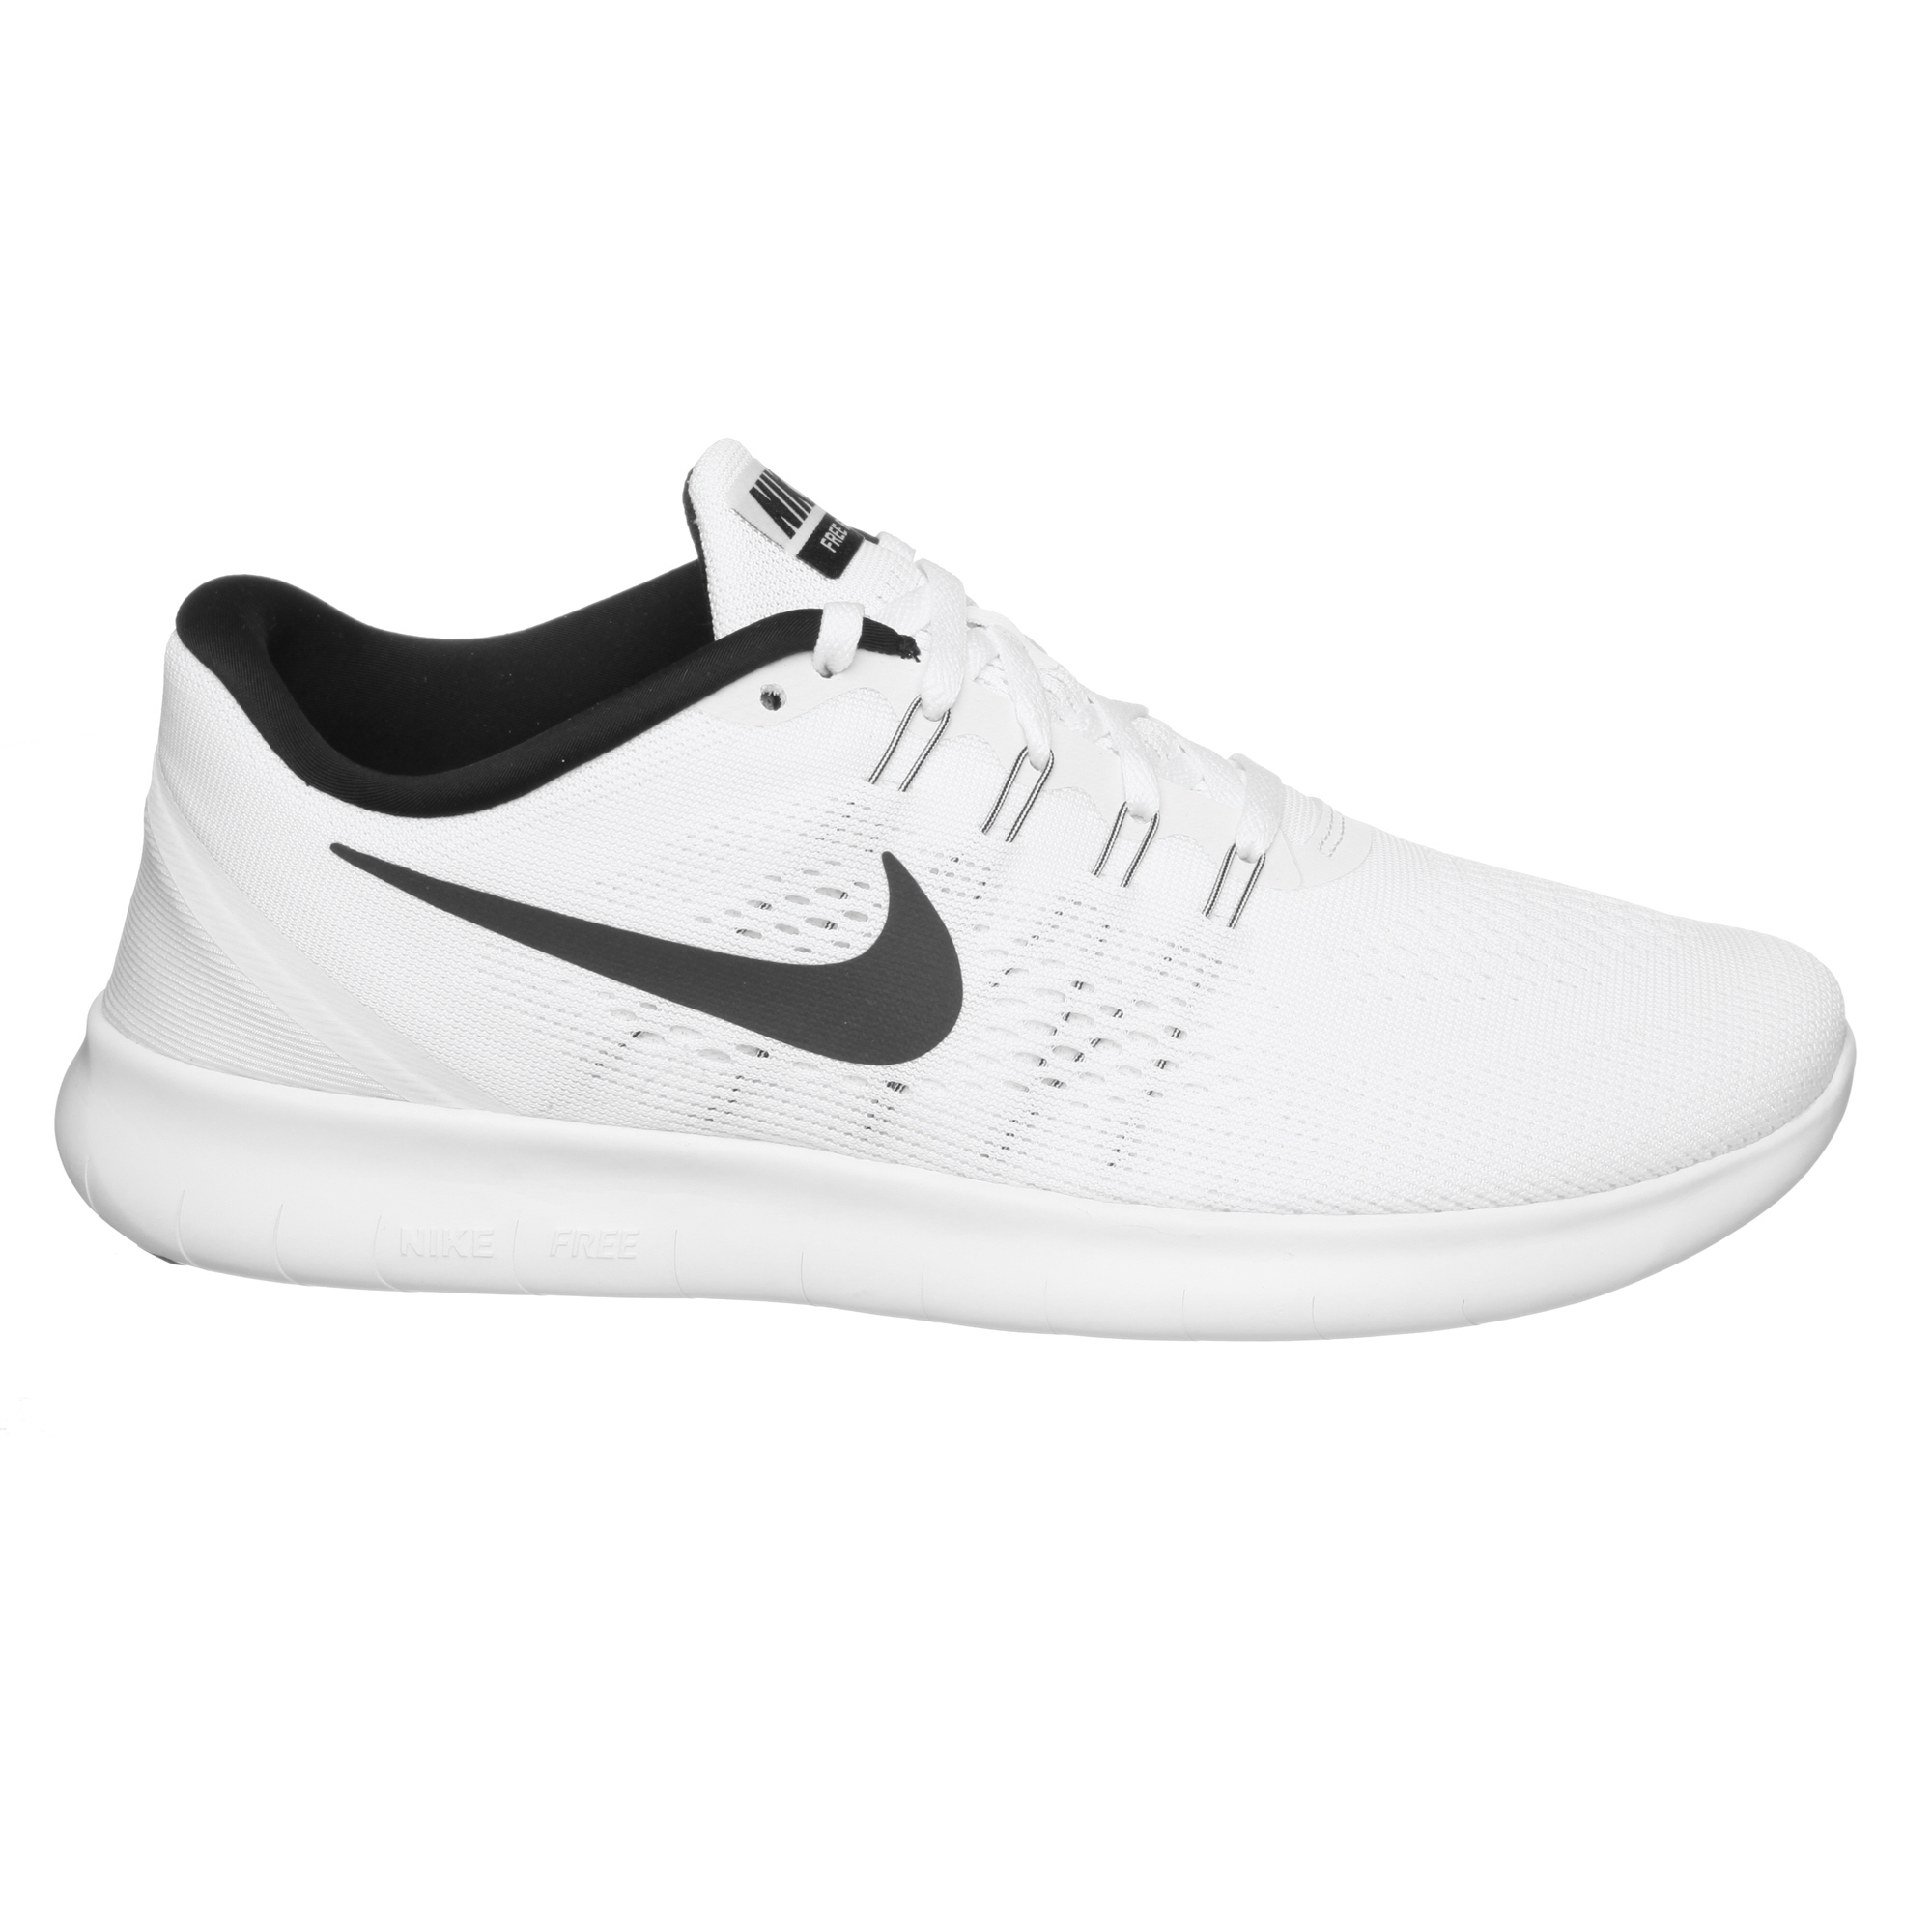 online retailer 5b8c2 b6346 Wiggle   Nike Free RN Running Shoes   Running Shoes